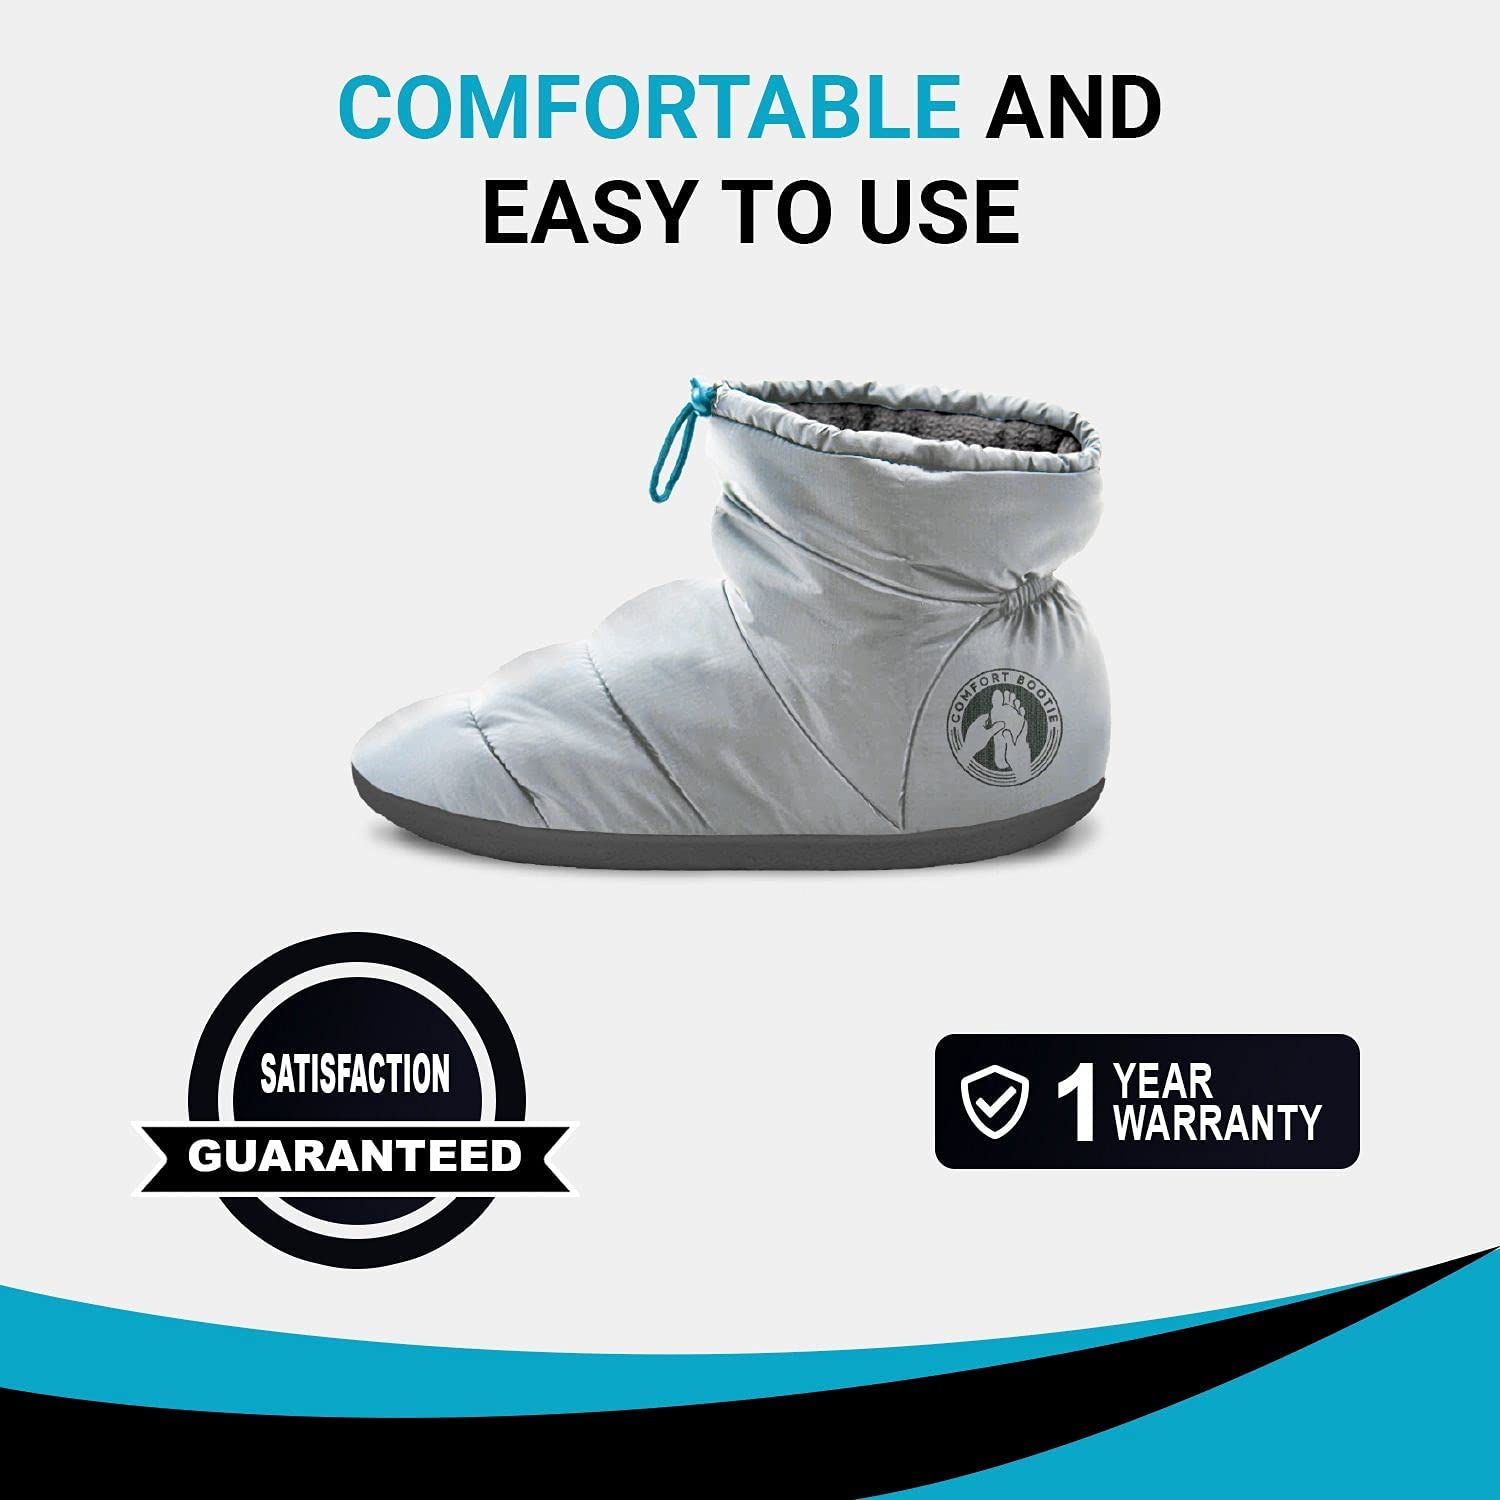 Infrared Heated Foot Warmers by Comfort Bootie - Far Infrared wavelength 8-15 μm, Non-Slip Heated Slippers with Wireless li-ion Rechargeable Batteries – Improve Circulation in The feet. (Medium: 8-9)